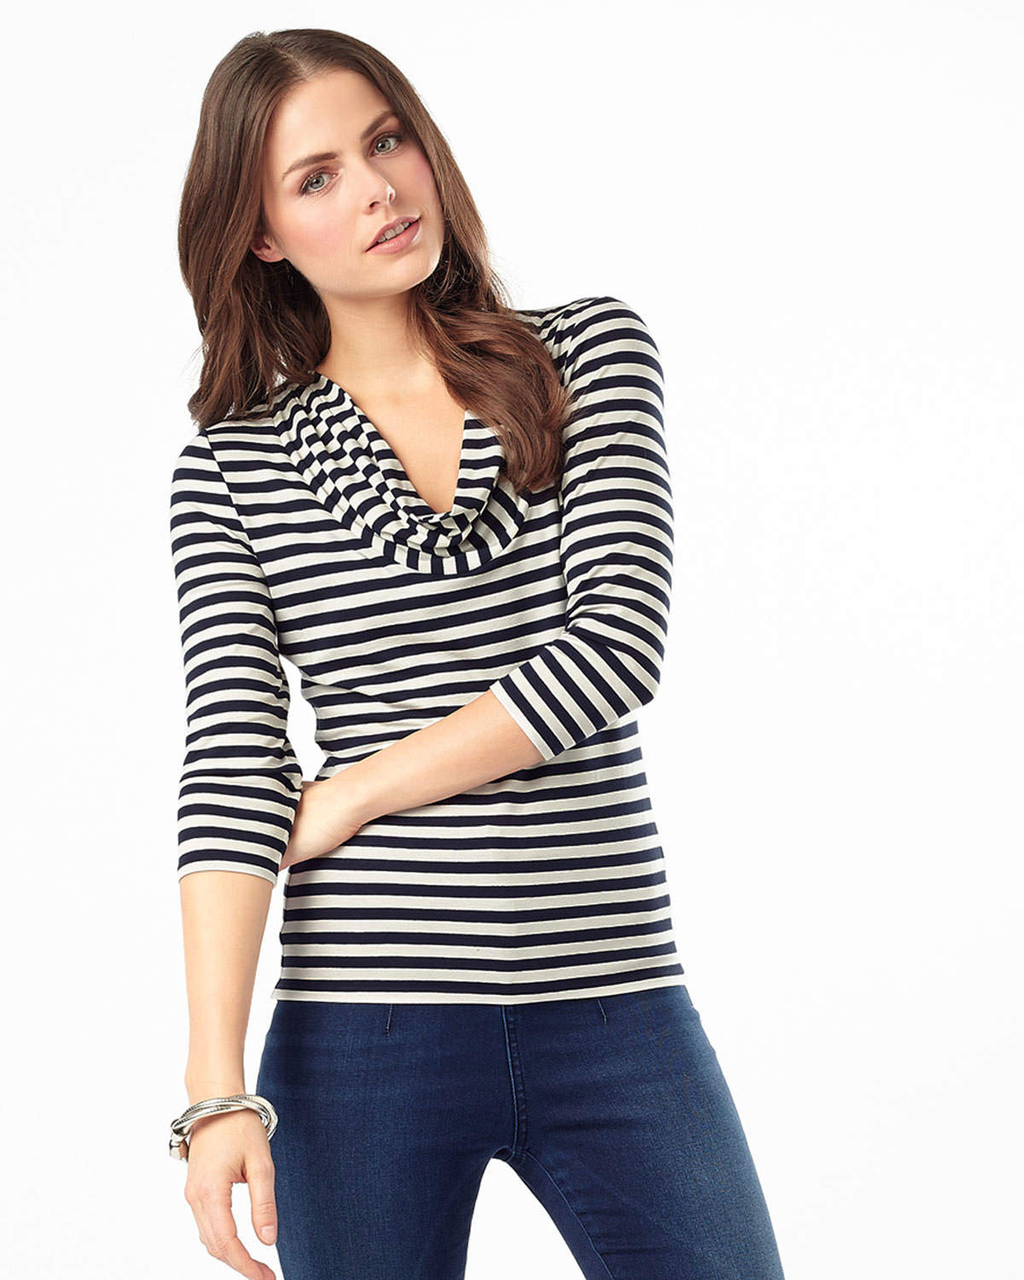 Carrie Stripe Top - neckline: cowl/draped neck; pattern: horizontal stripes; predominant colour: black; occasions: casual, creative work; length: standard; style: top; fibres: cotton - stretch; fit: tight; sleeve length: 3/4 length; sleeve style: standard; texture group: jersey - clingy; pattern type: fabric; pattern size: big & busy (top); season: a/w 2015; wardrobe: basic